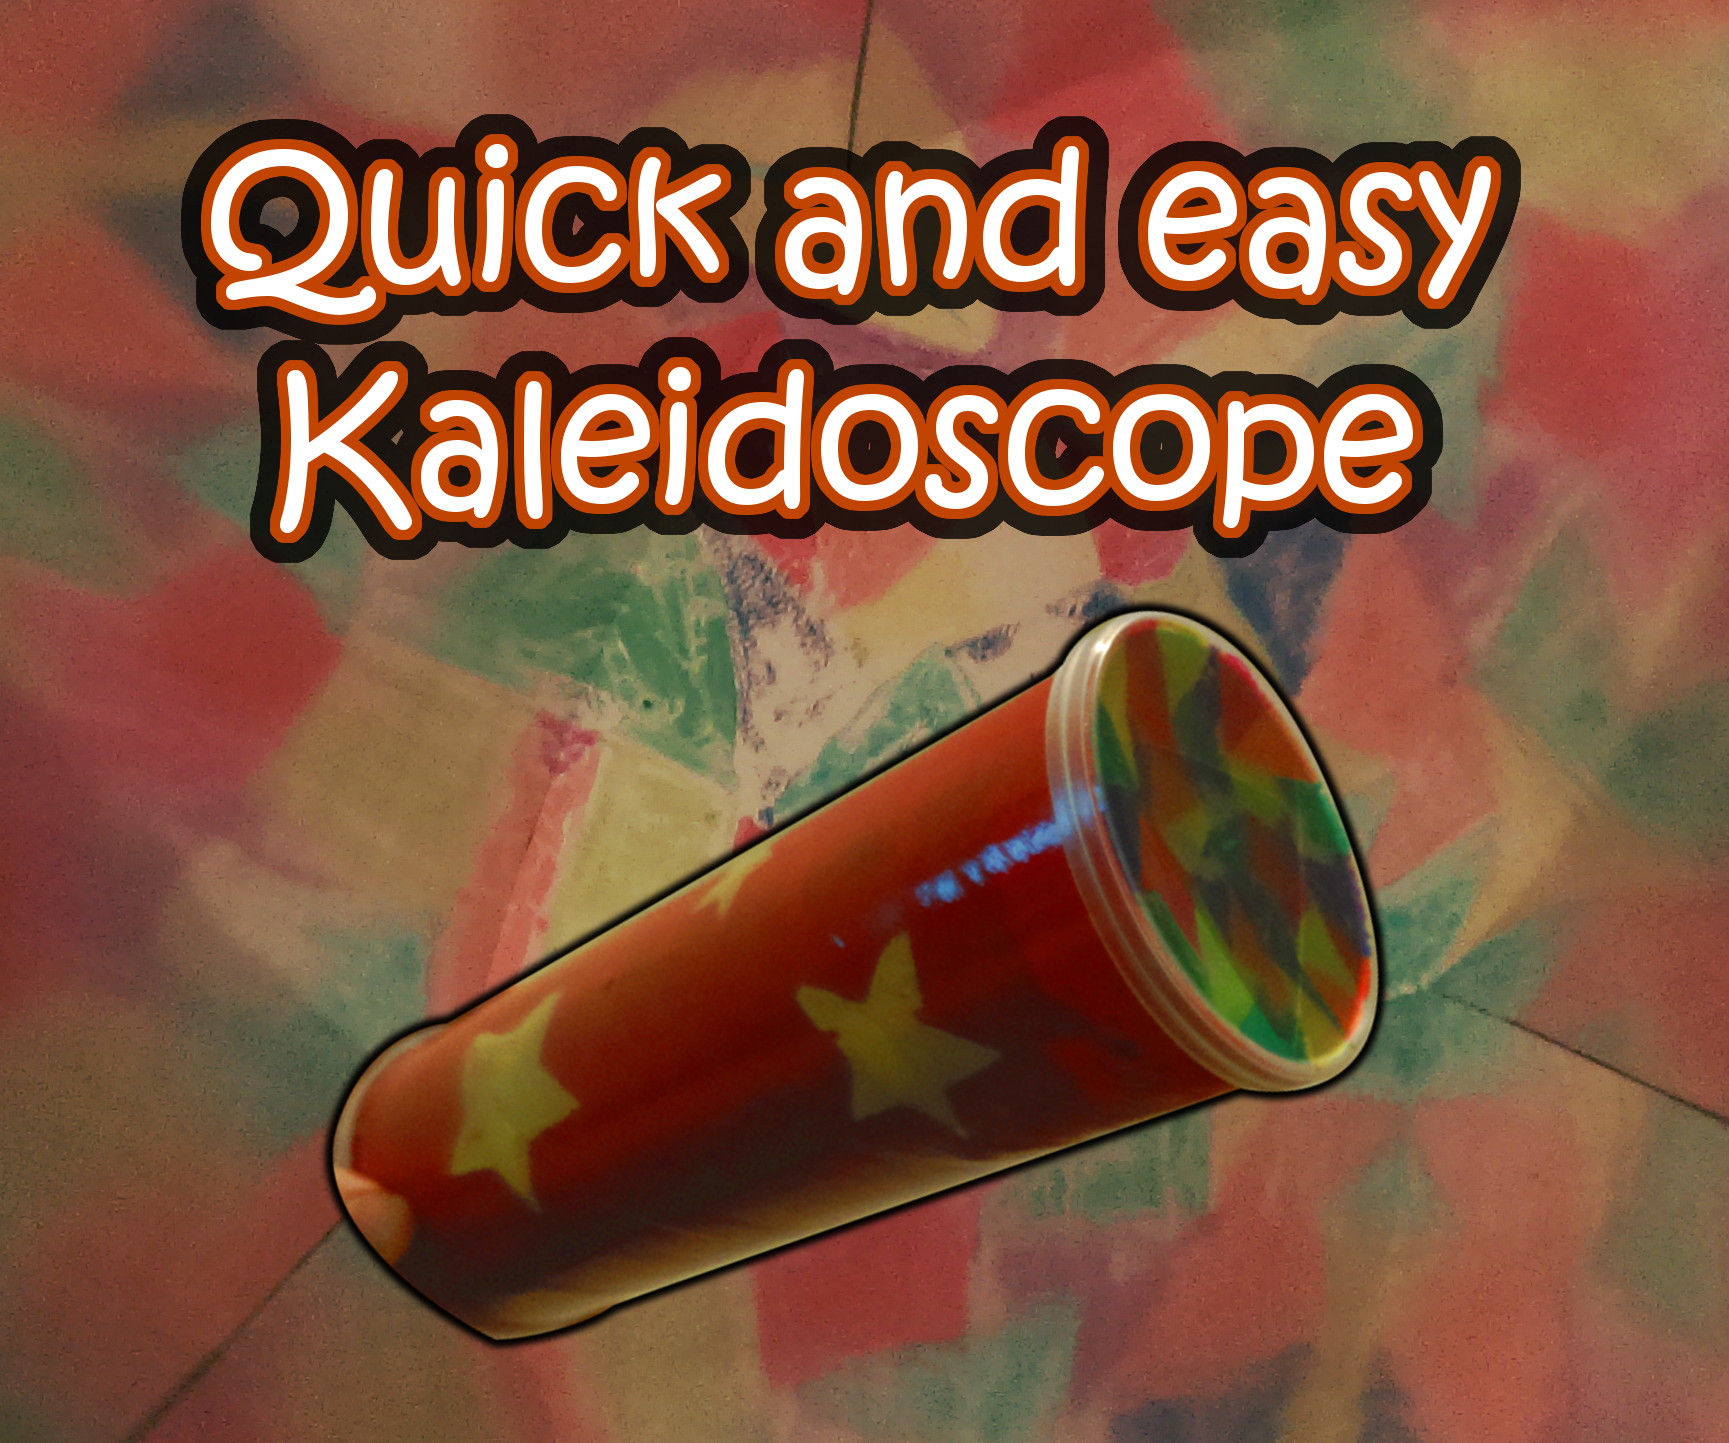 Quick, cheap and easy Kaleidoscope